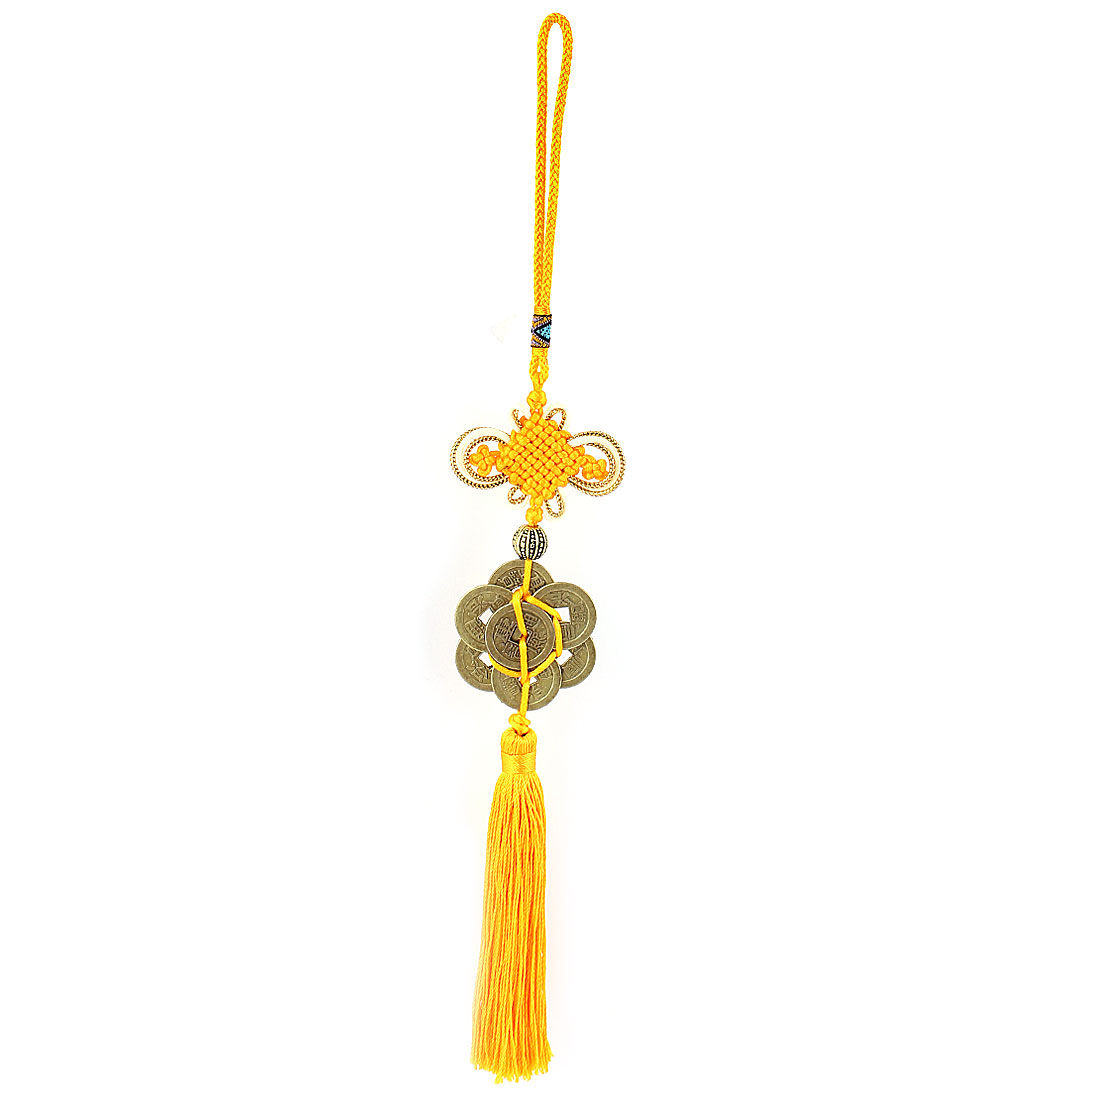 Vehicle Auto Chinese Knot Style Tassel Charm Copper Cash Pendant Hanging Ornament Gifts Decoration Yellow